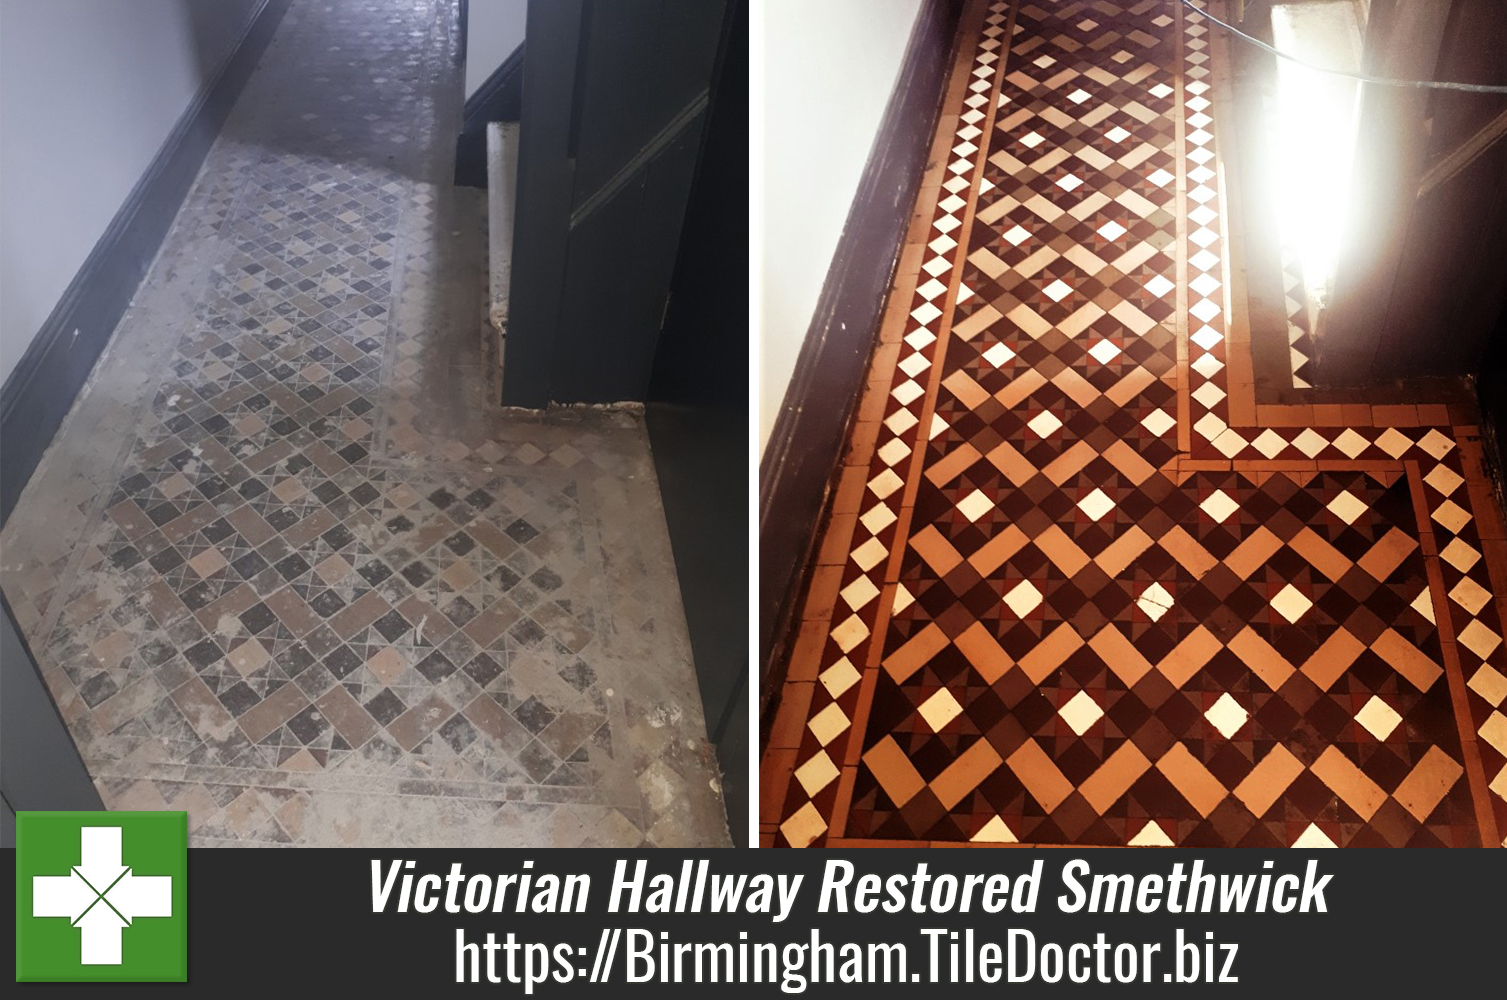 Full Victorian Hallway Floor Restoration for Property Developer in Smethwick